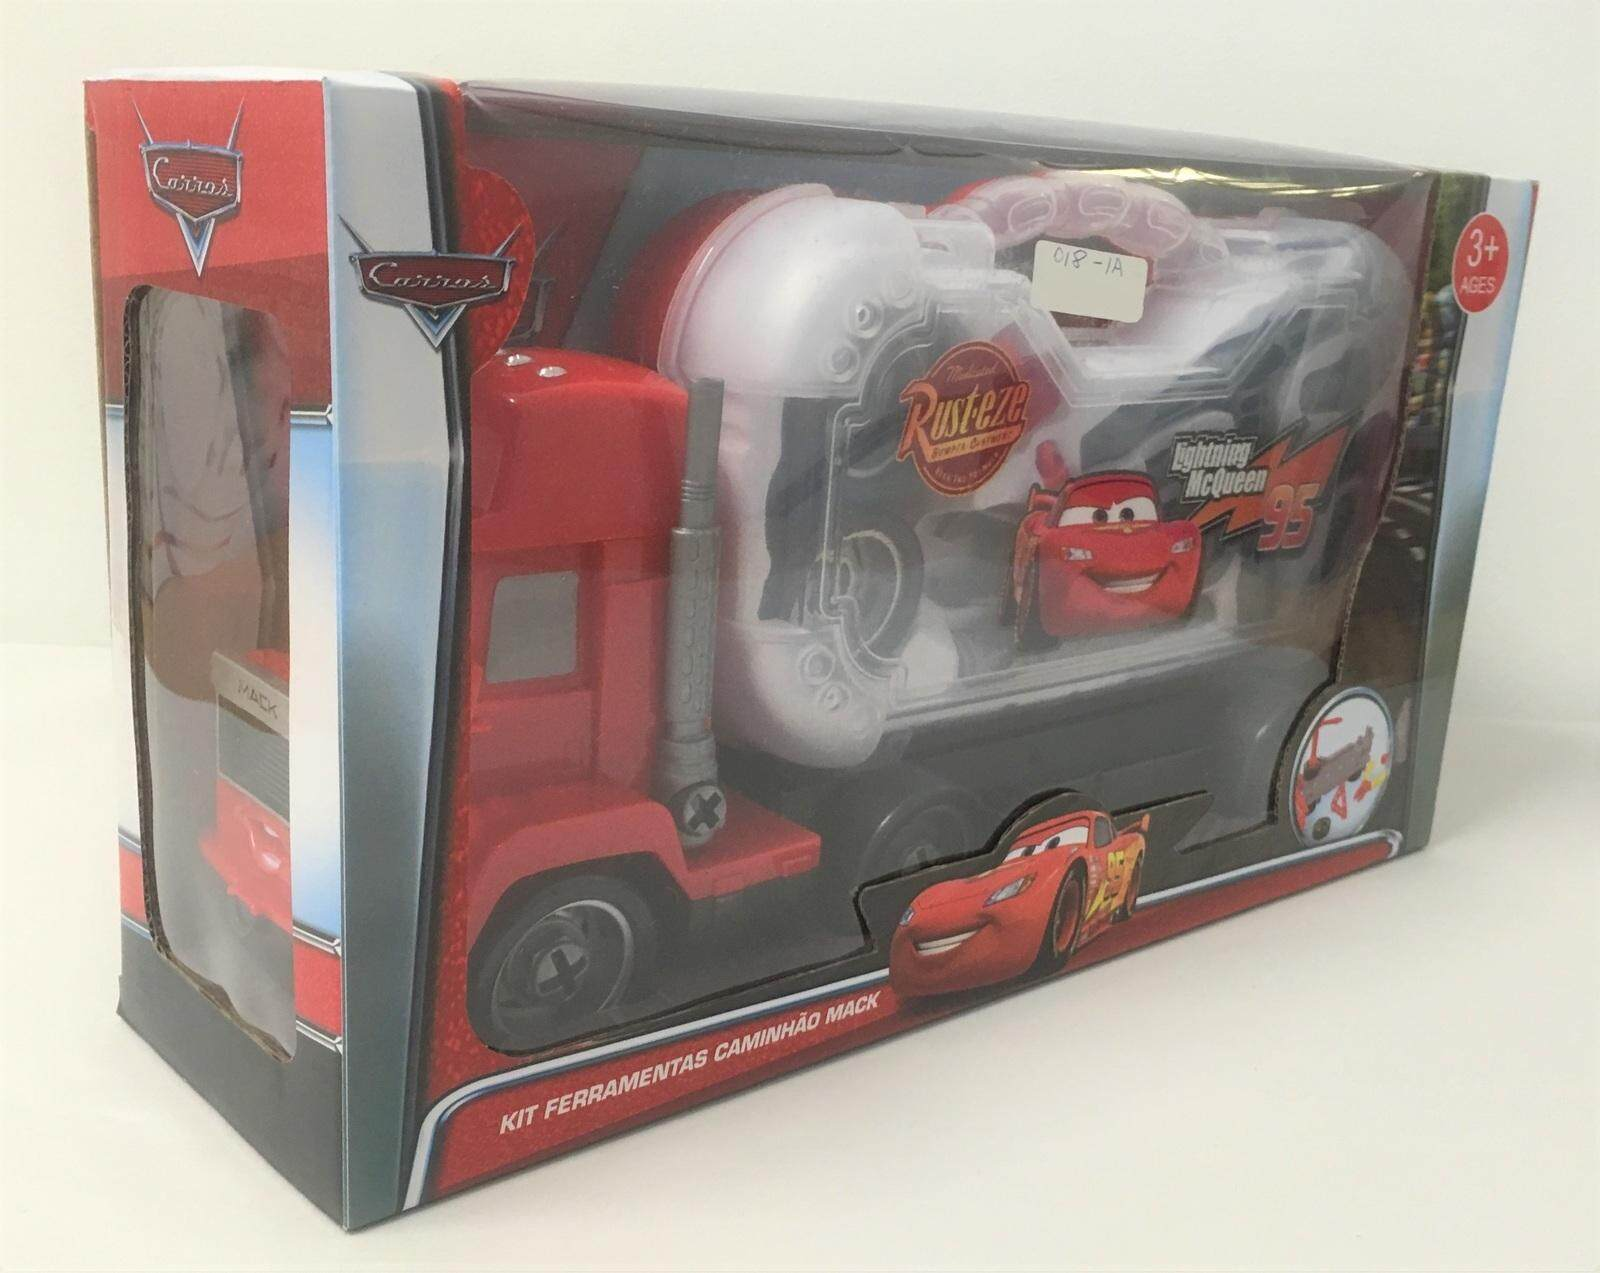 Excellent Feo Playset Toys Cars Mack Truck With Tool Box Tools Kit Lightning Mcqueen 95 Toys For Girls Evergreenethics Interior Chair Design Evergreenethicsorg